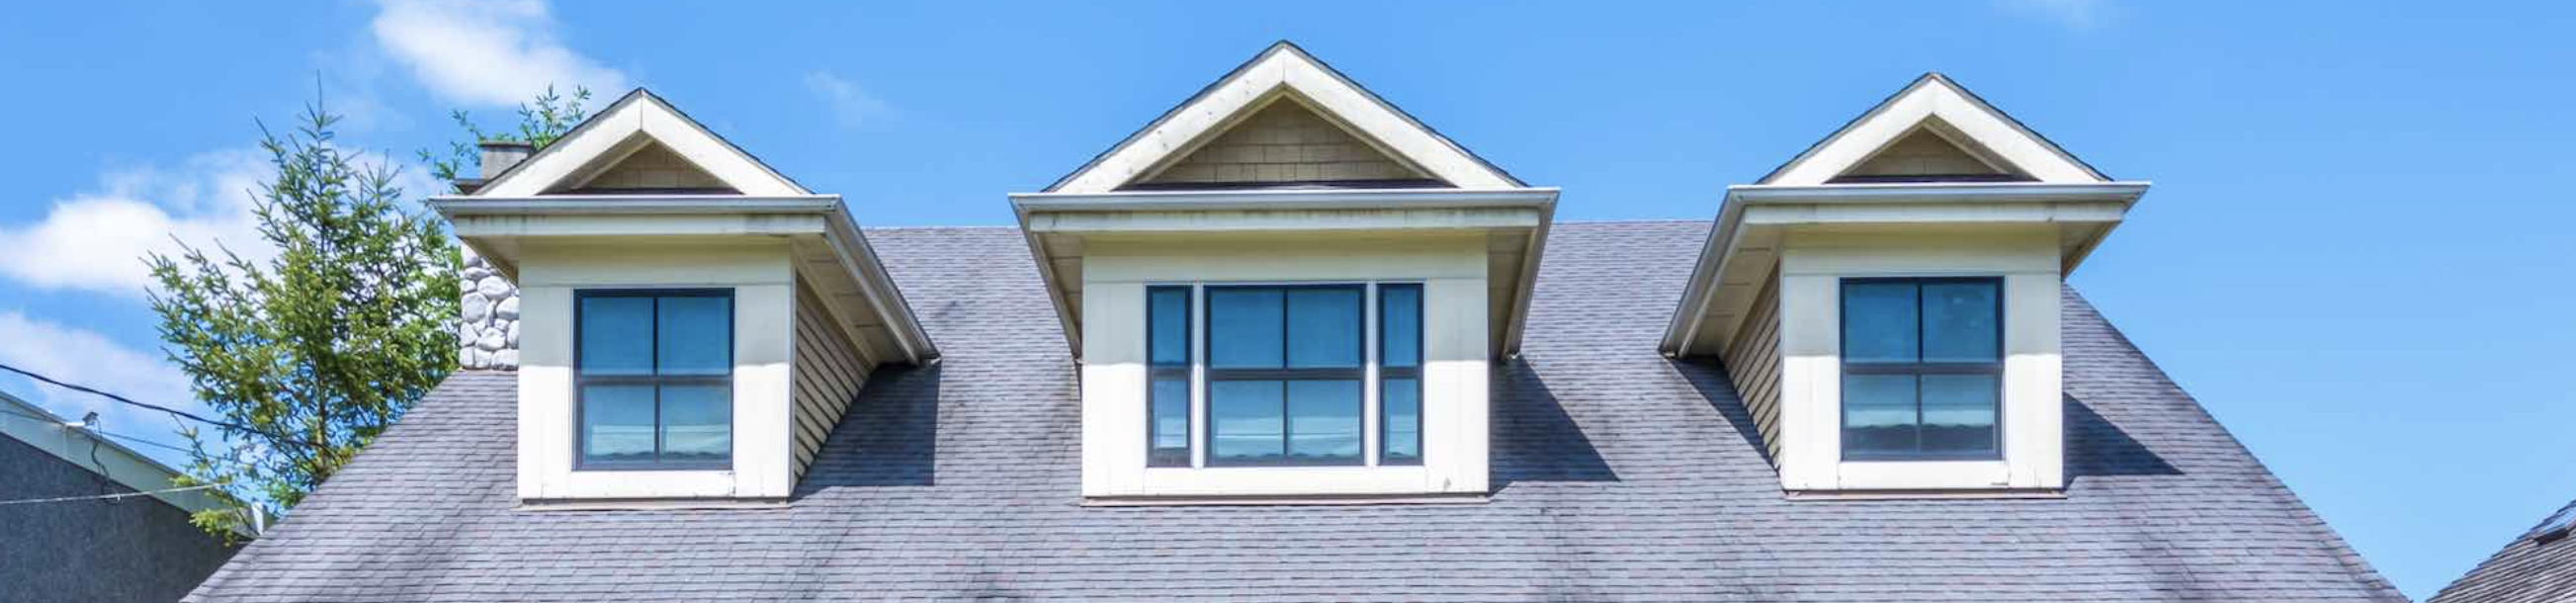 Picture of a house roof